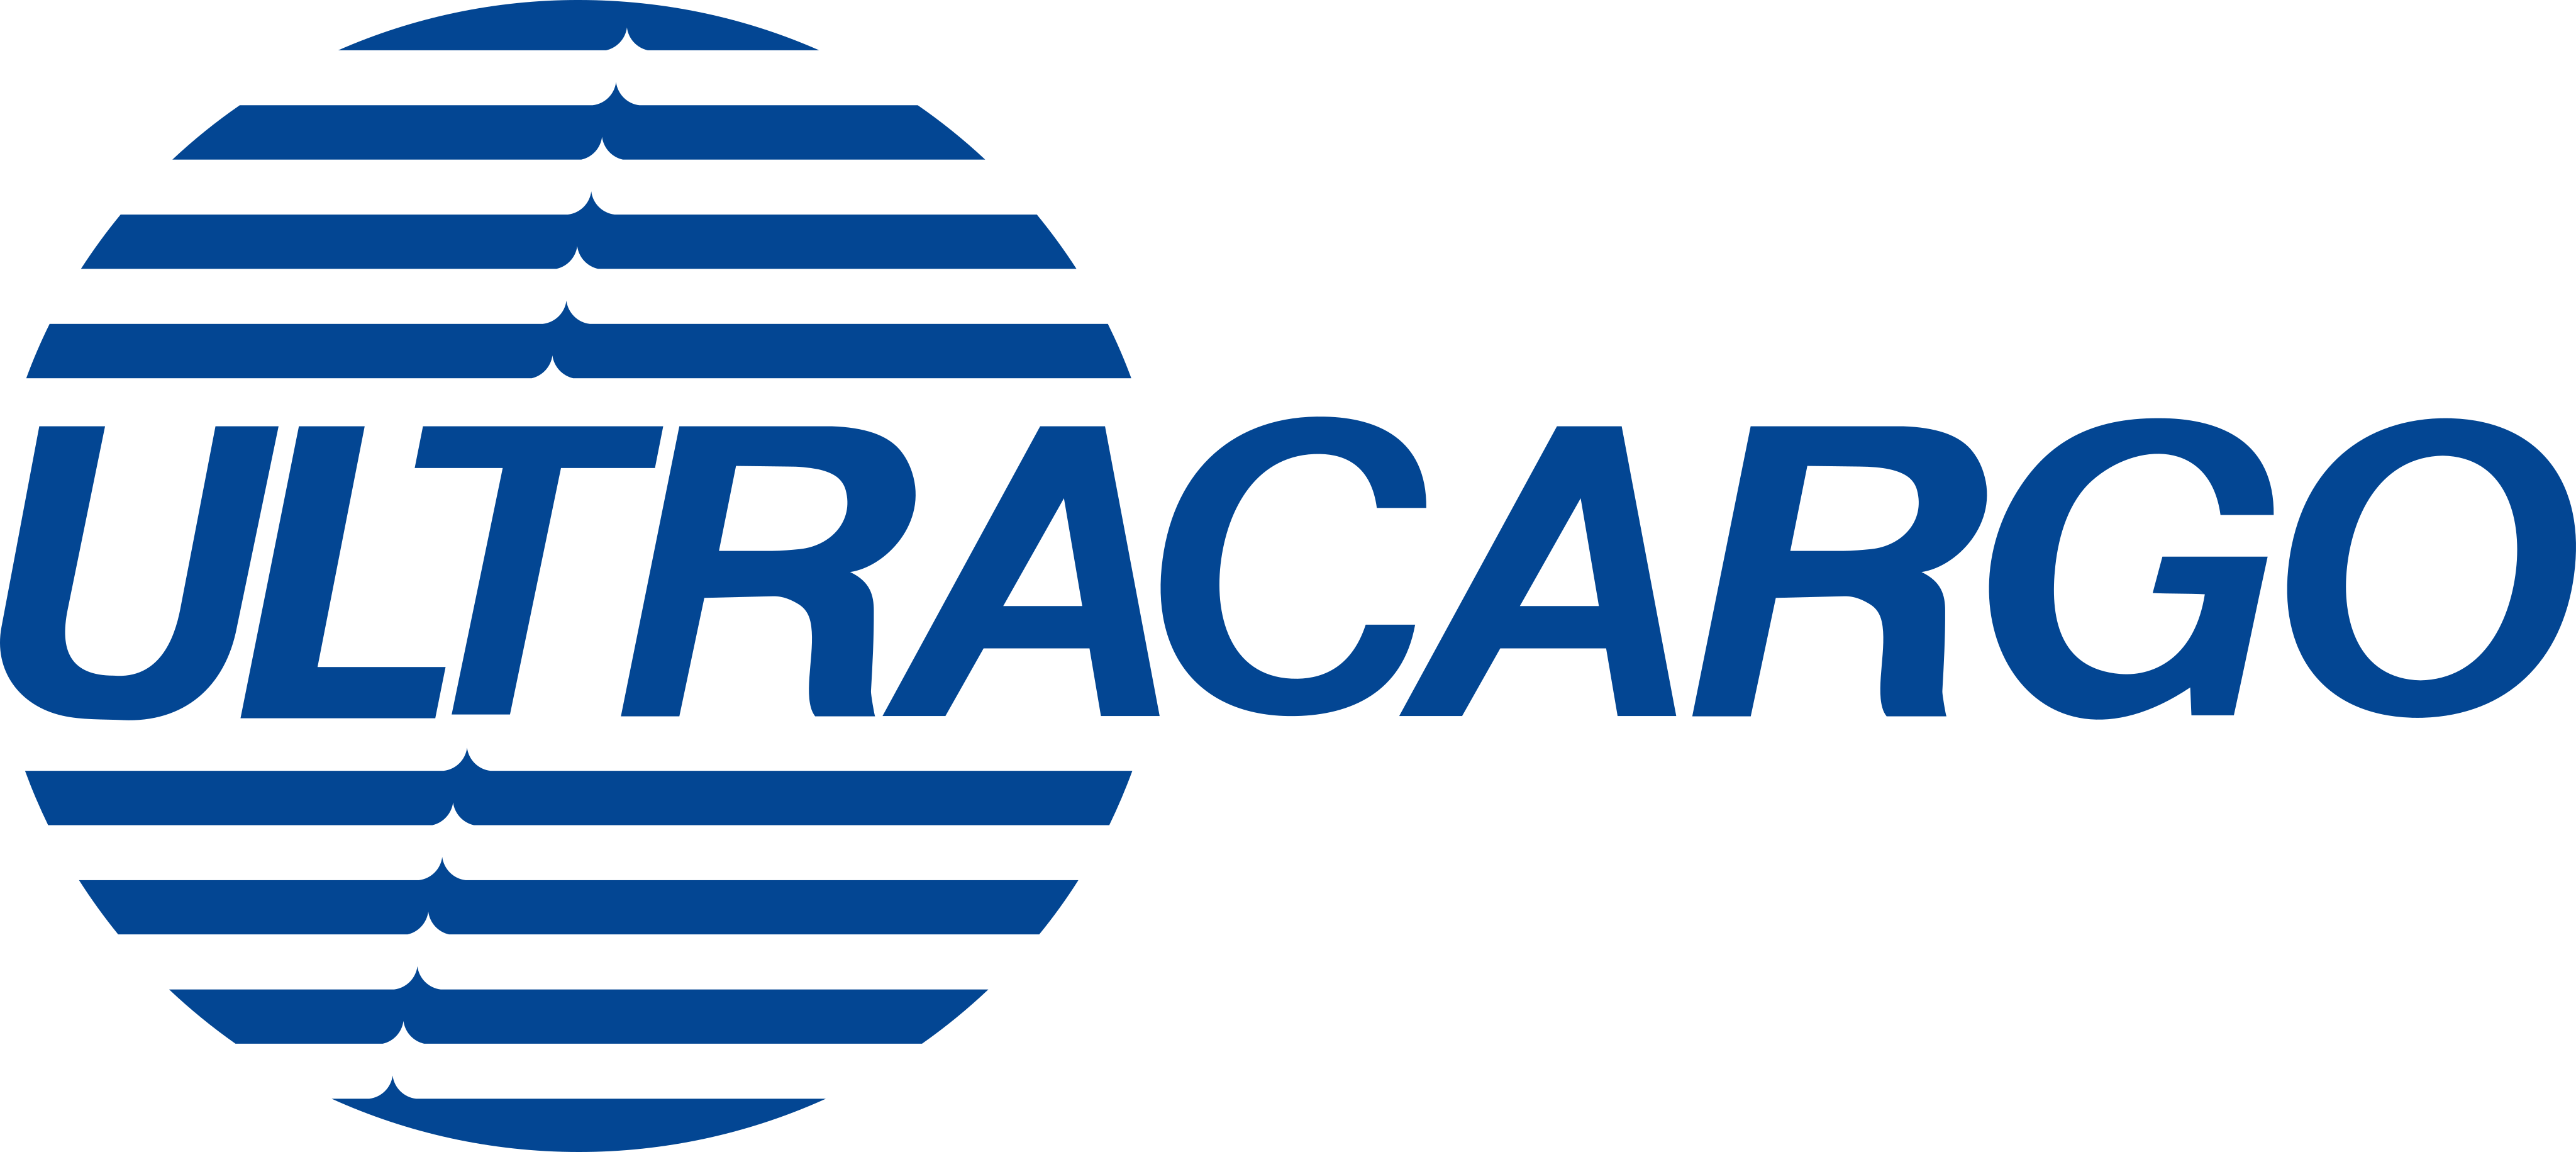 Ultracargo Logo.